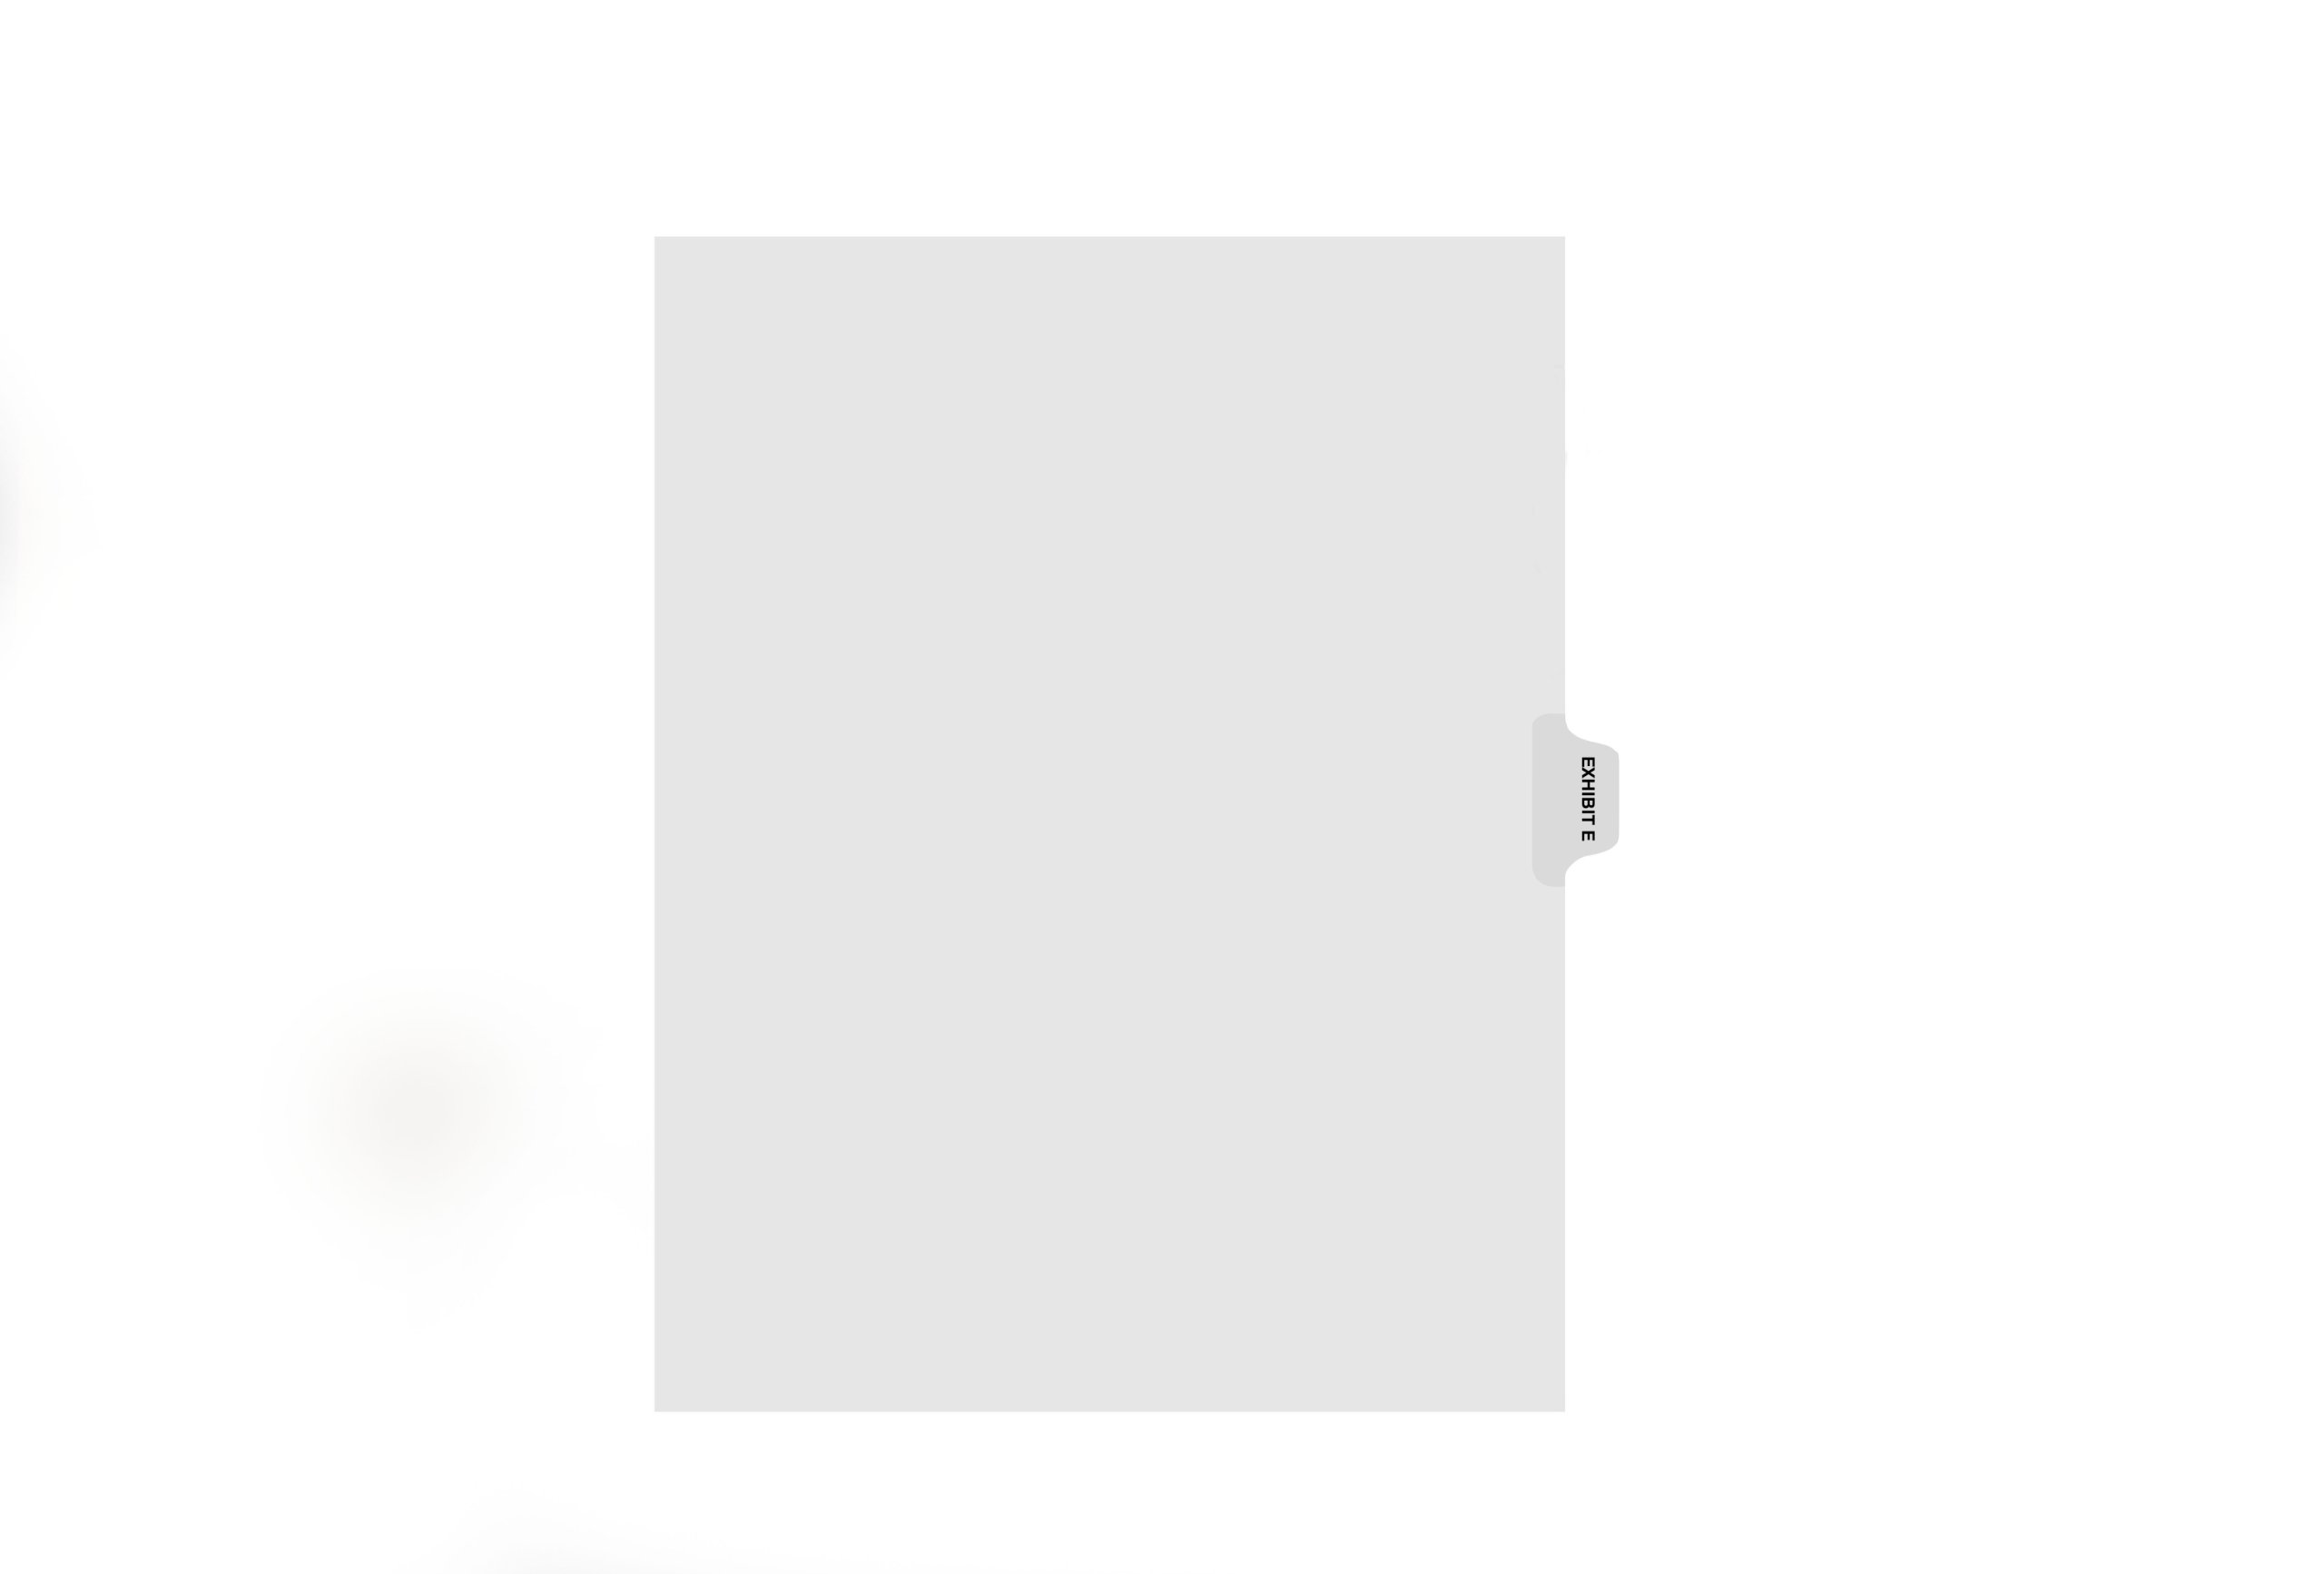 Kleer-Fax Letter-Size Individual Exhibit Letter Index Dividers, Side Tab, 1/10th Cut, 25 Sheets per Pack, White, Exhibit E (81005)